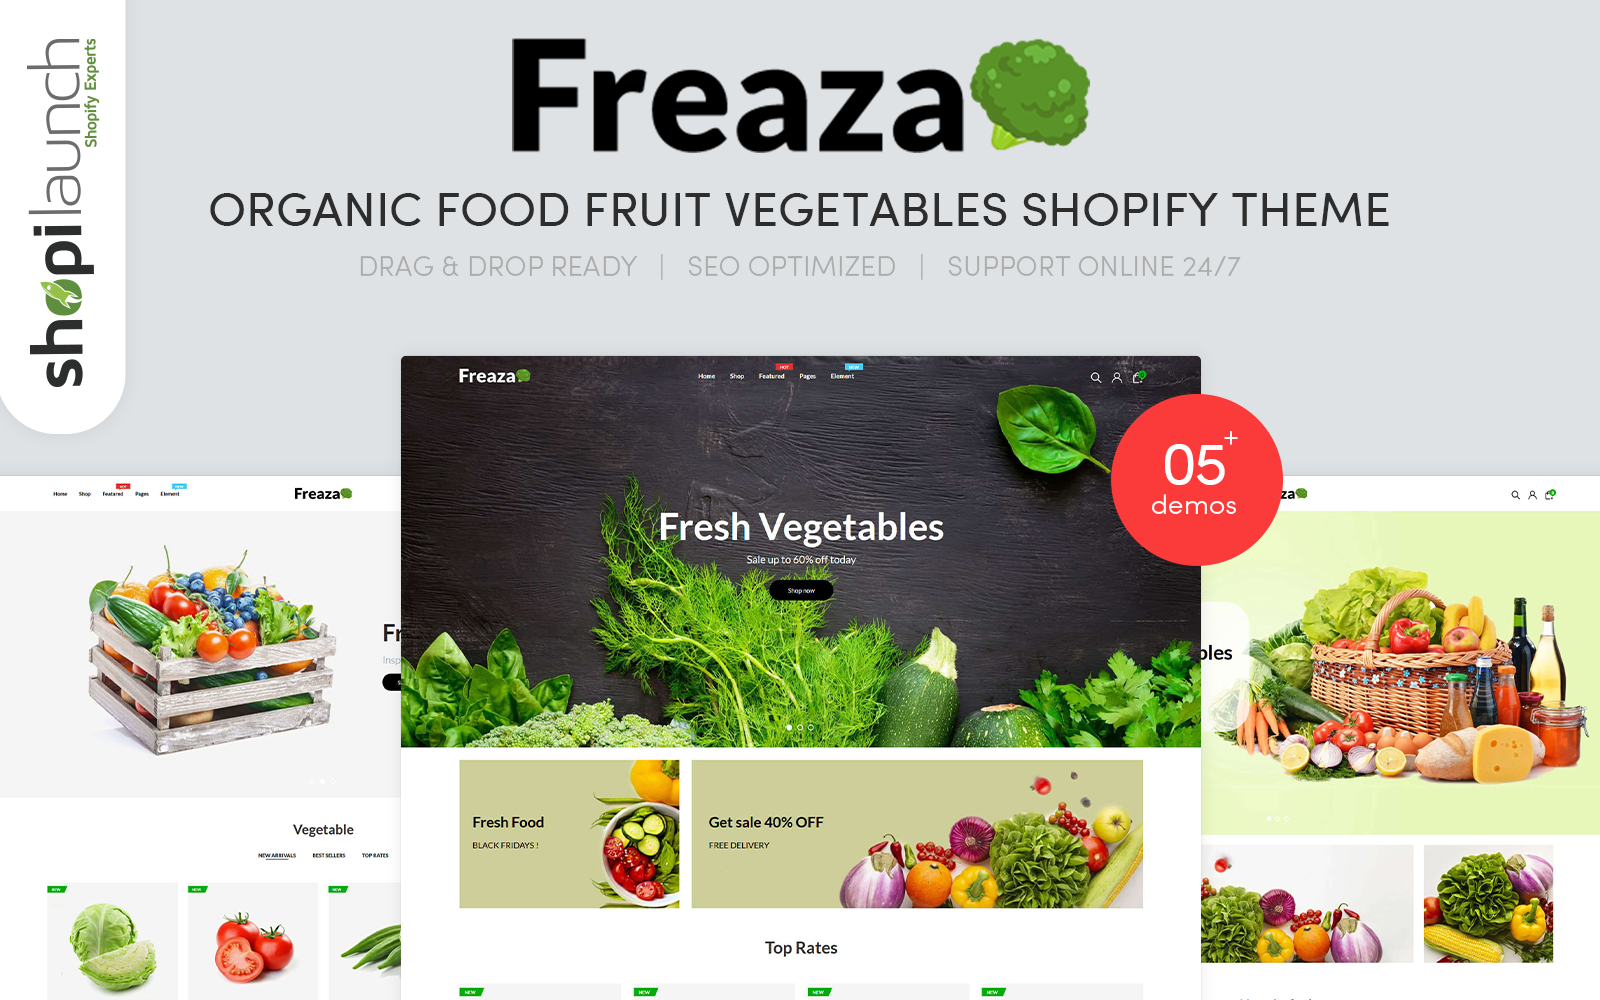 Freaza - Organic Food Fruit Vegetables Shopify Theme